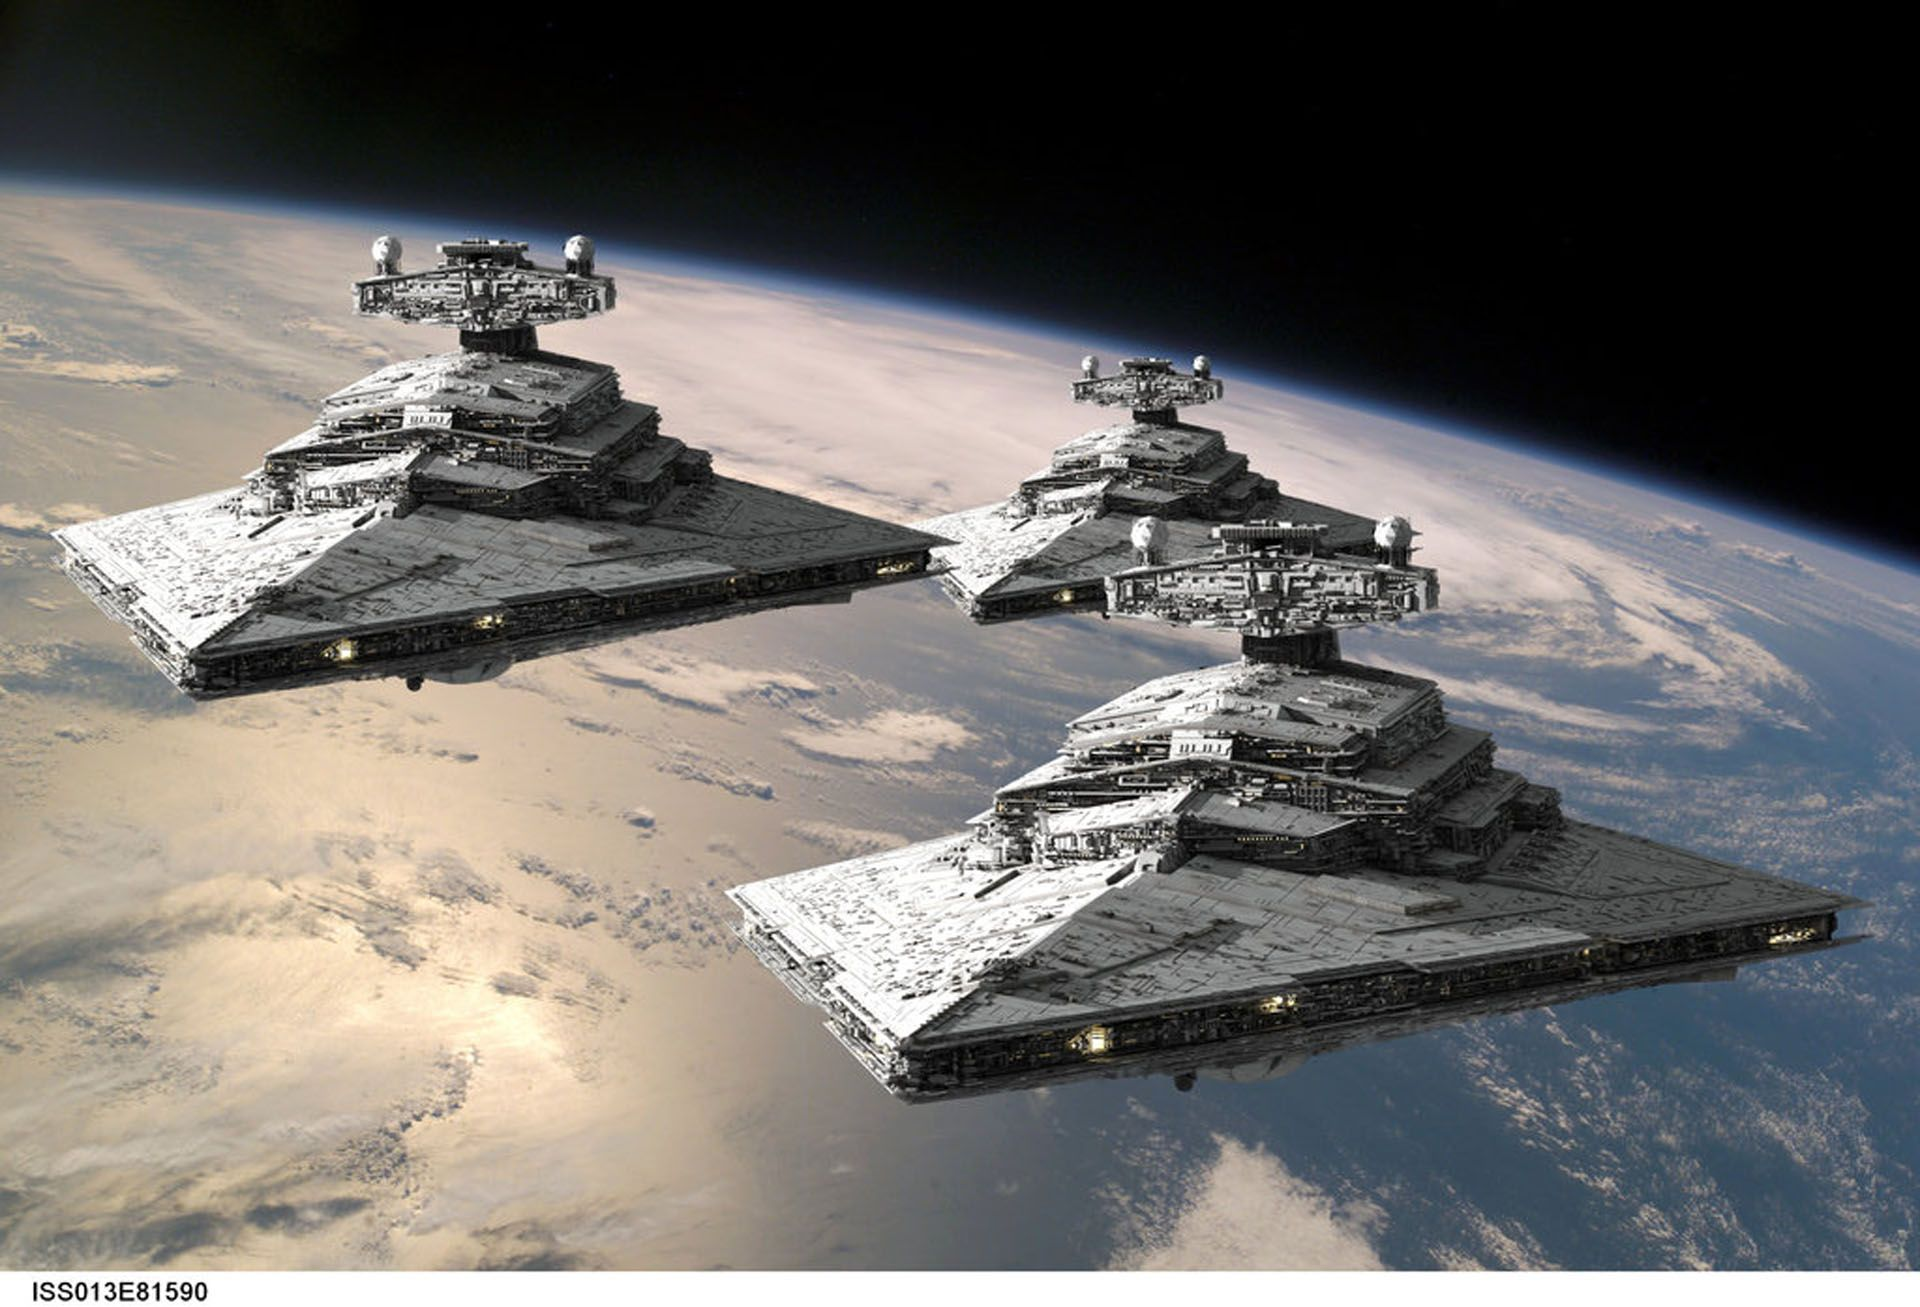 Star Destroyer Wallpaper Star Wars Wallpaper Star Wars Spaceships Star Wars Ships